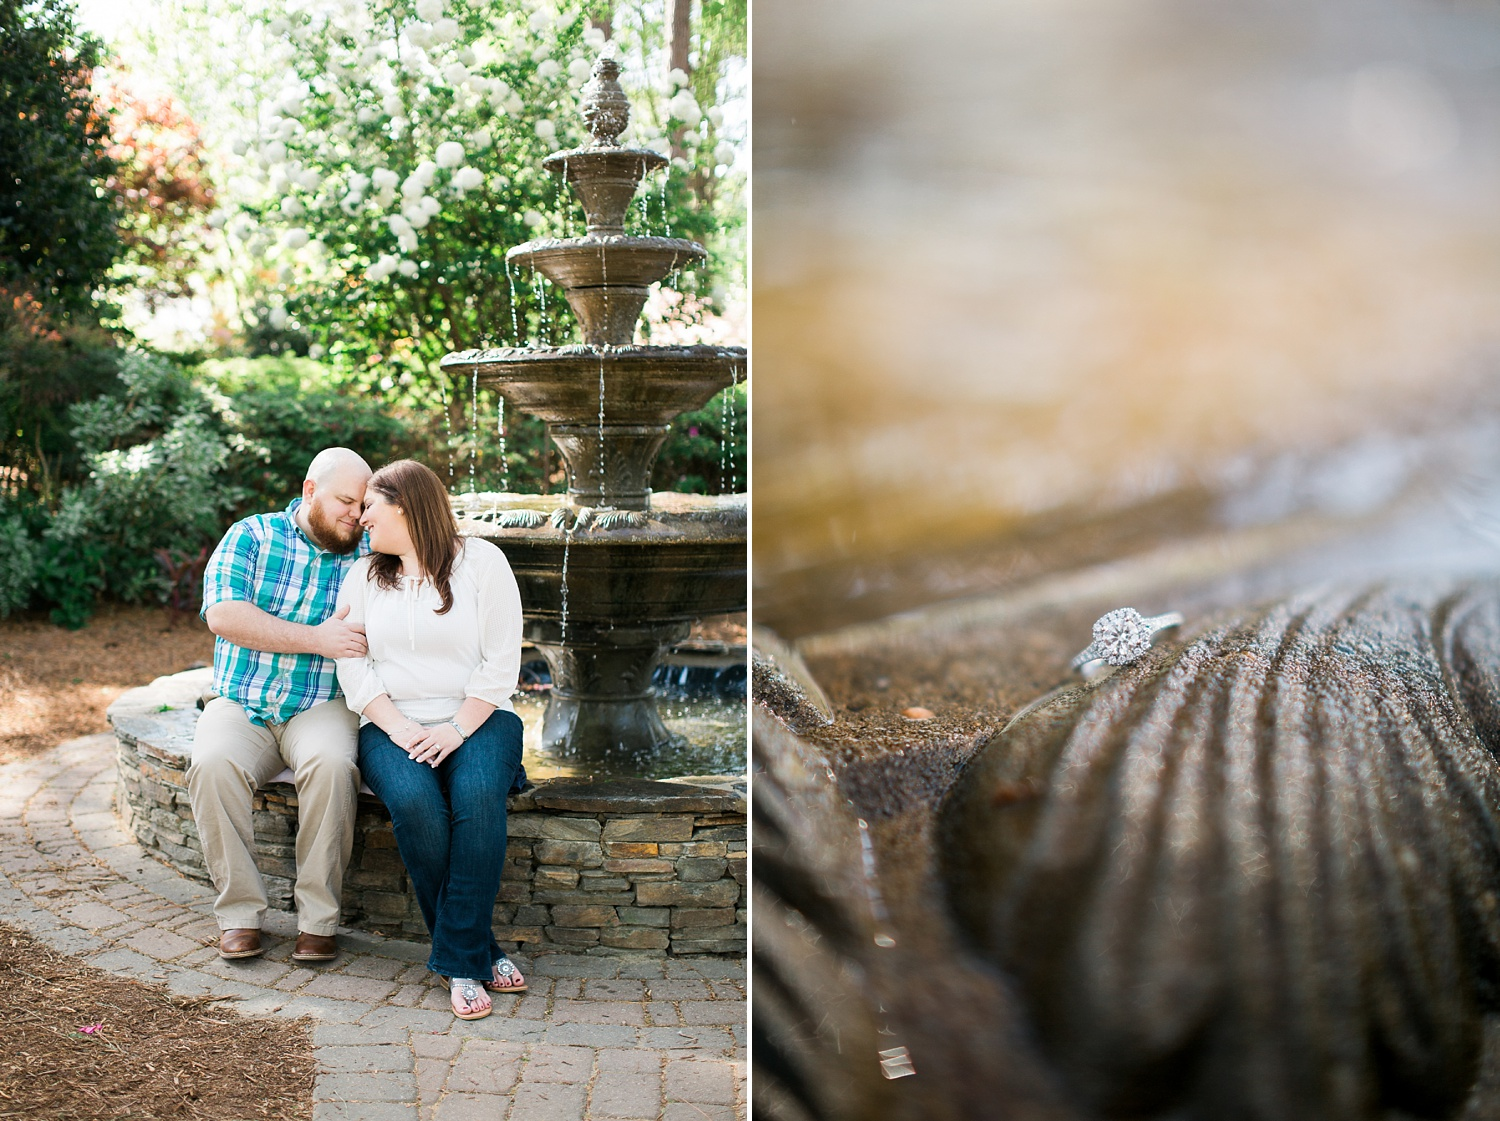 couple sits on the edge of a water fountain in a garden